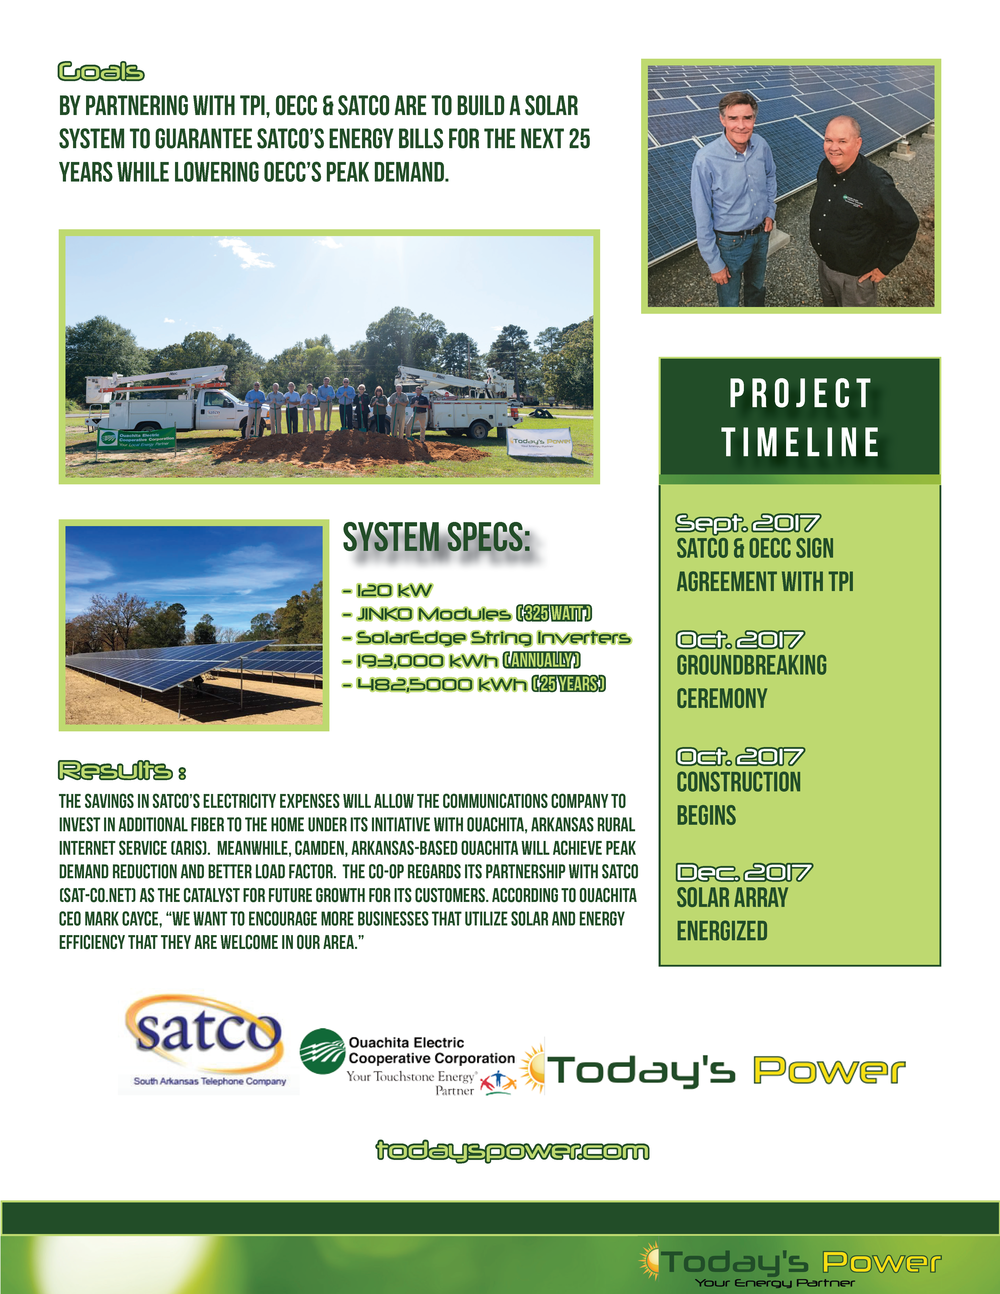 Copy CaseStudy-News Release - SATCO TA18 -2-13_Page_1.png